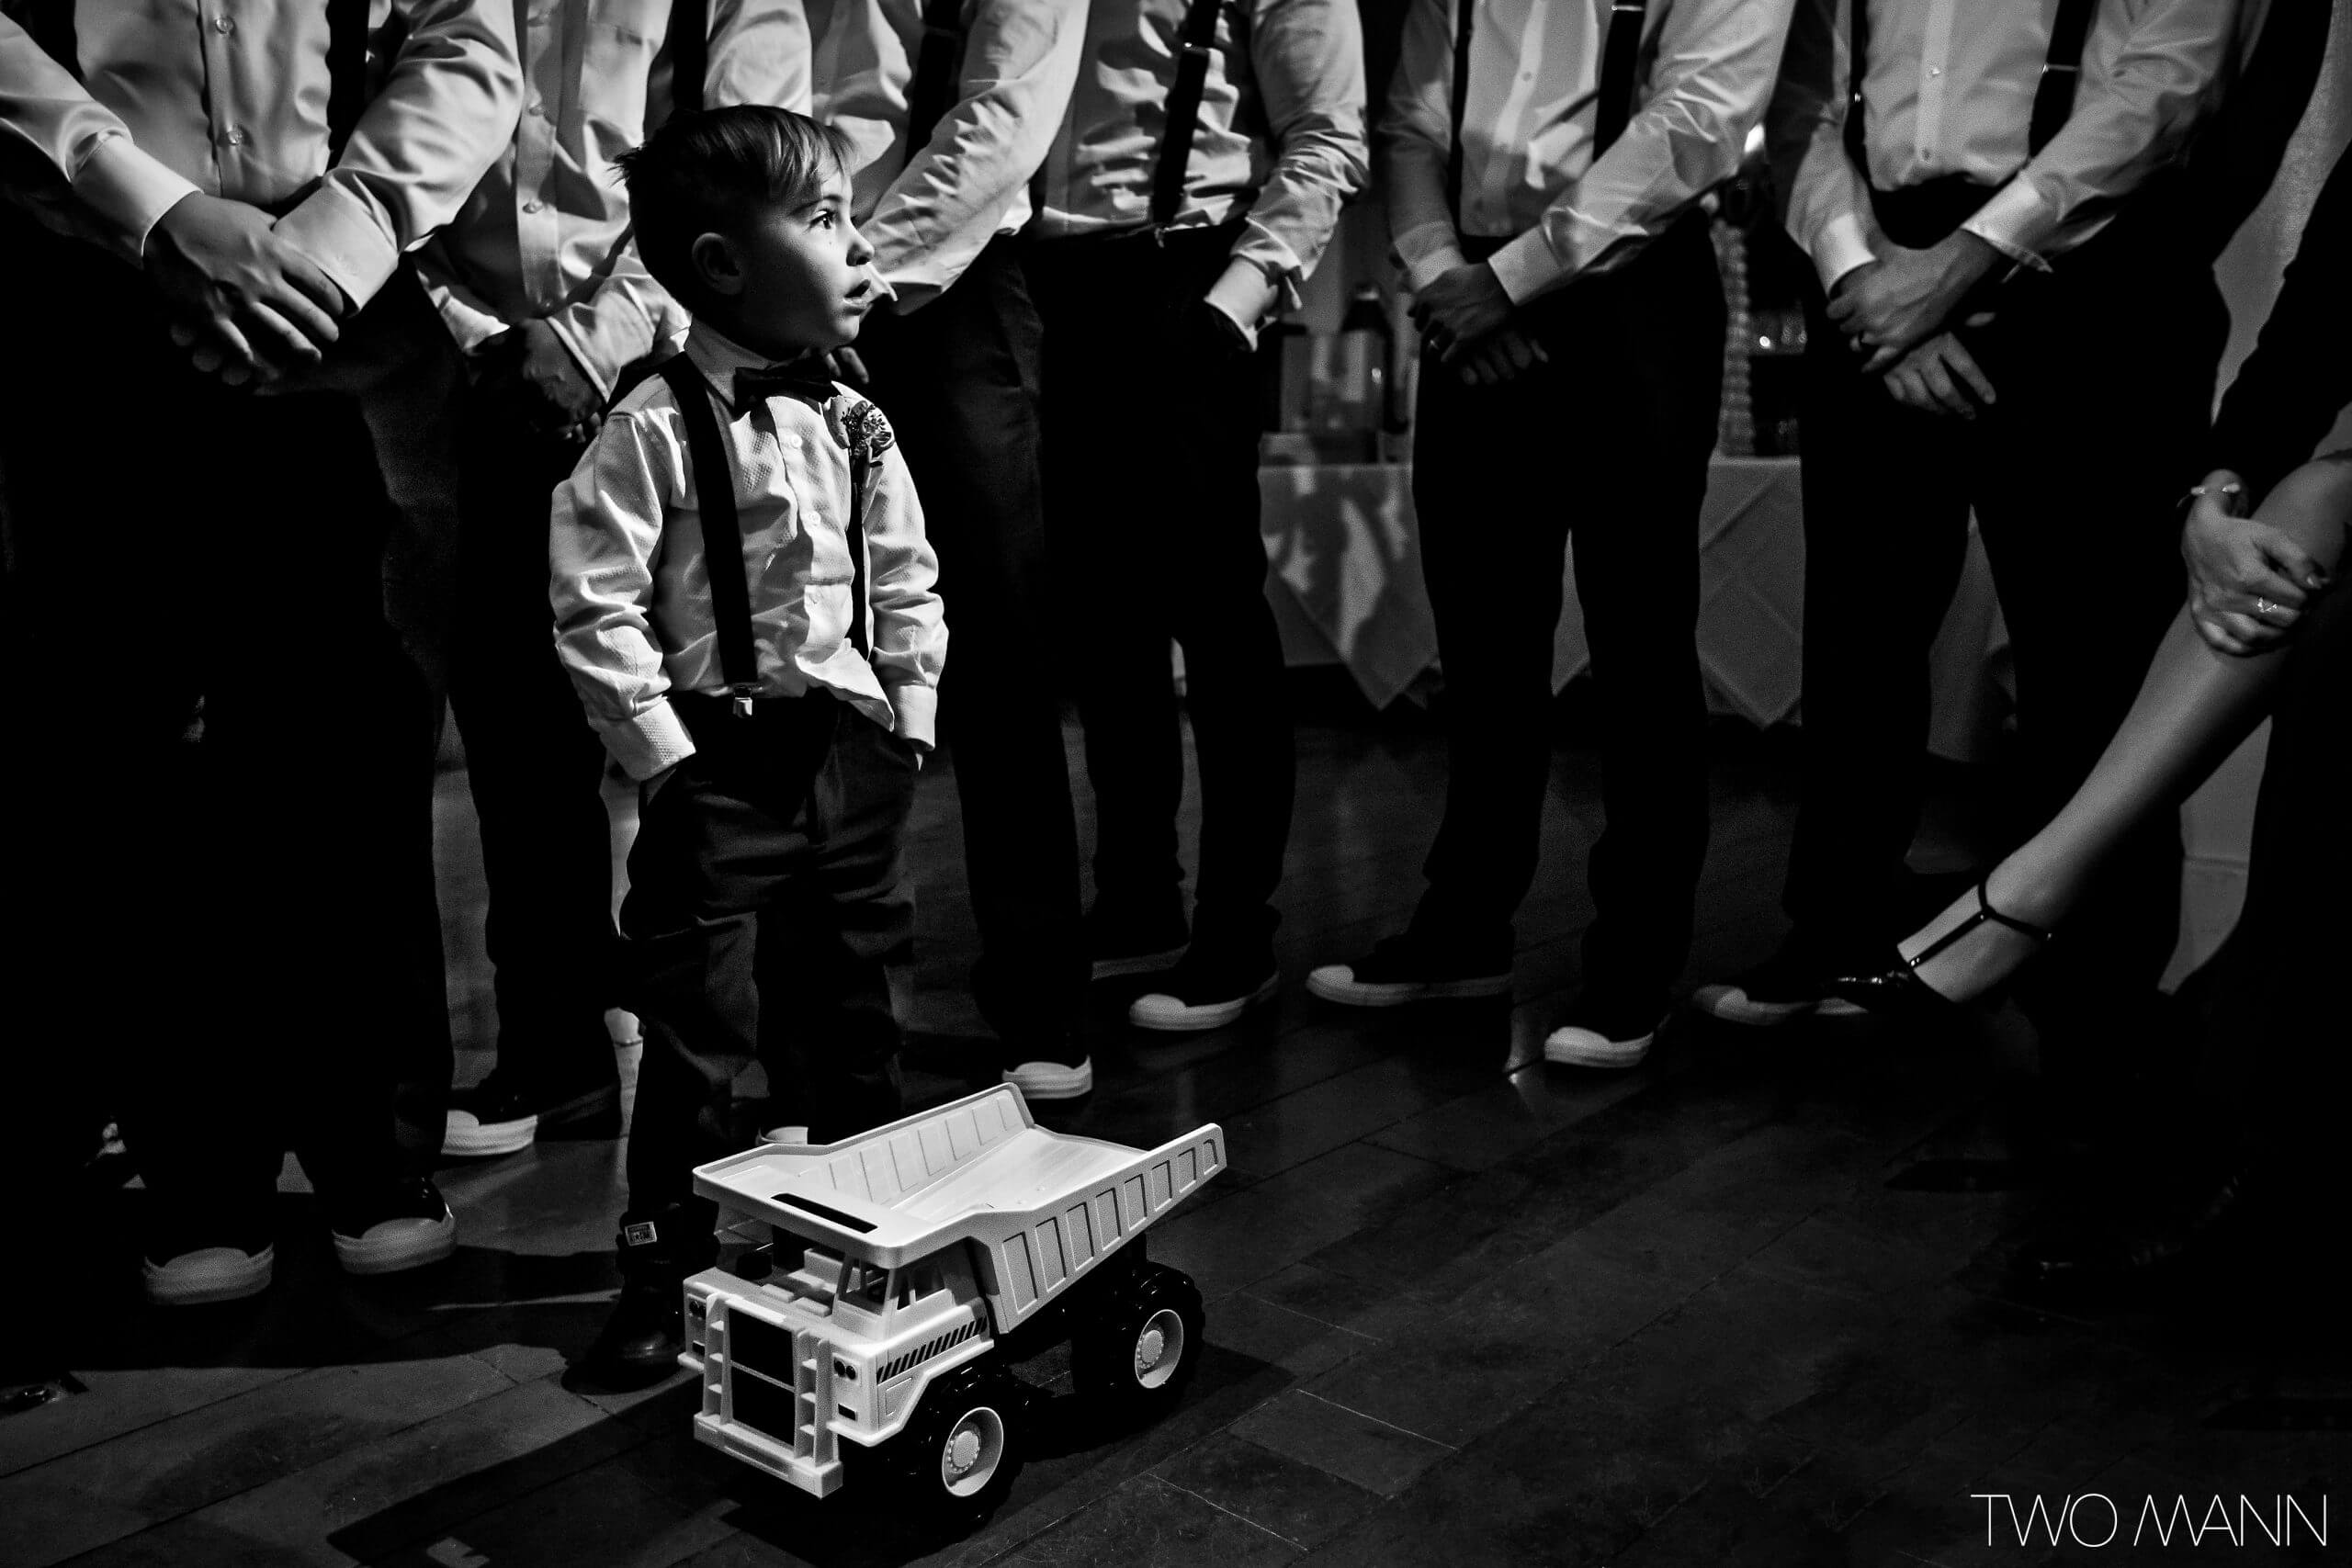 observing the wedding from the perspective of a kid